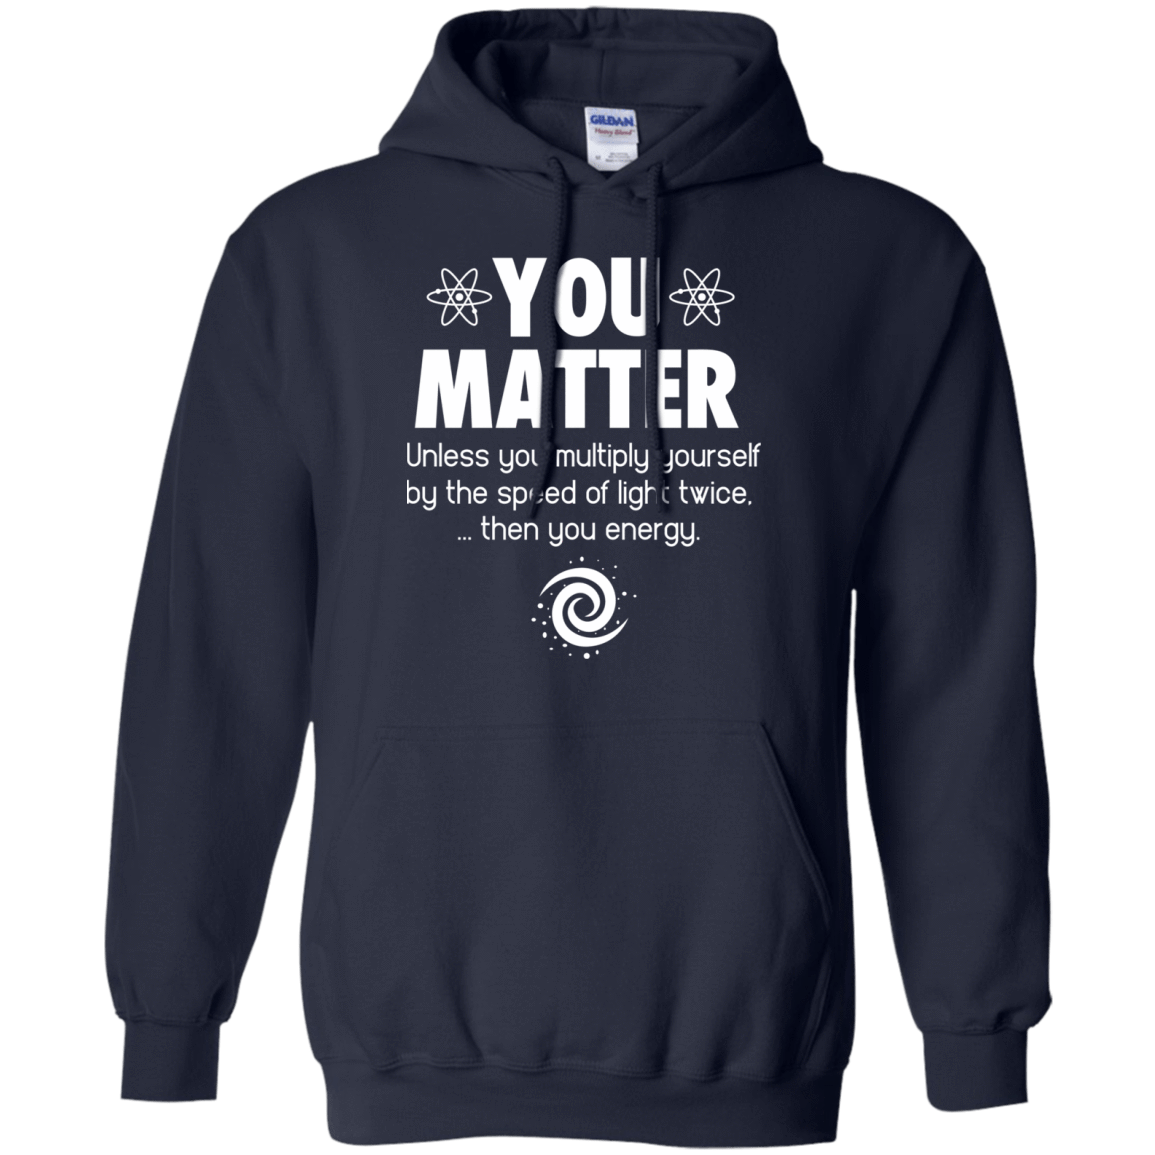 You Matter. Until You Multiply Yourself By The Speed Of Light Twice 541-4742-72771876-23135 - Tee Ript